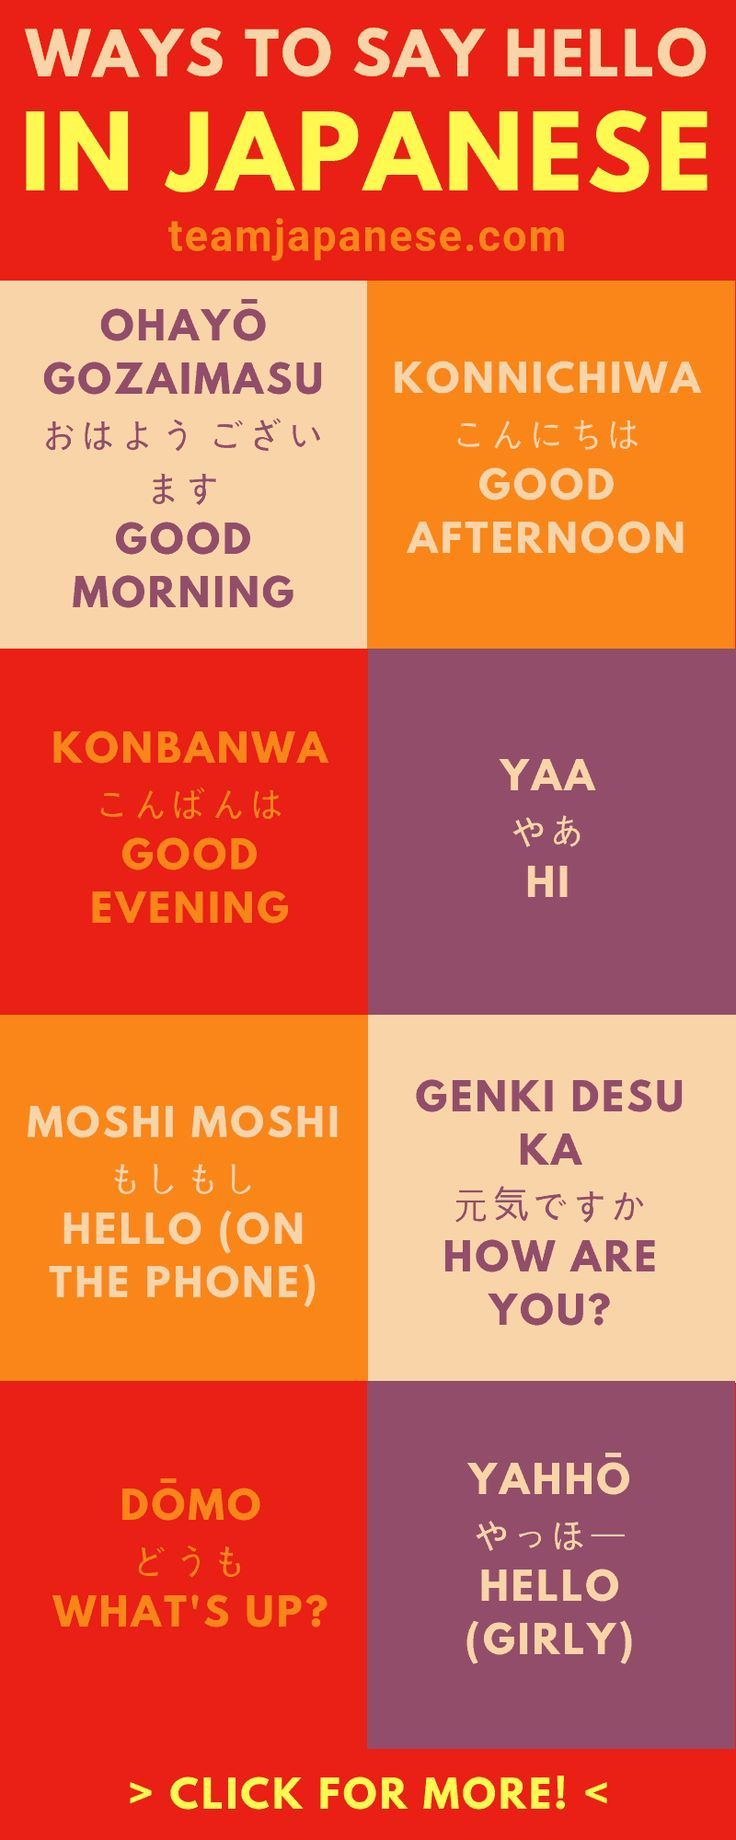 19 Different Ways to Say Hello in Japanese